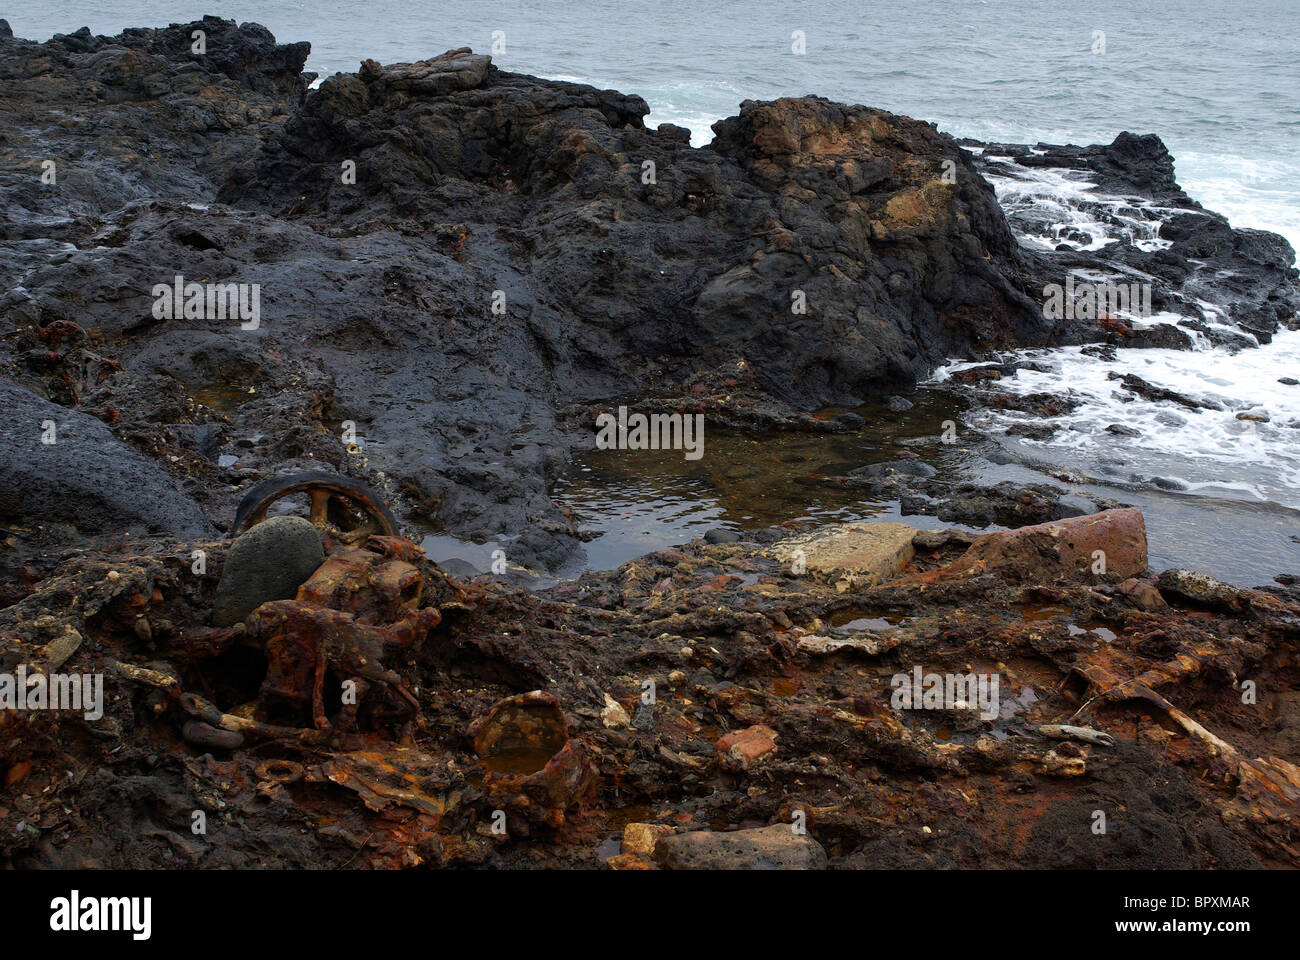 Decomposing trash litters the shore of Glass Beach in Hawaii. Glass Beach was a former garbage dump. - Stock Image